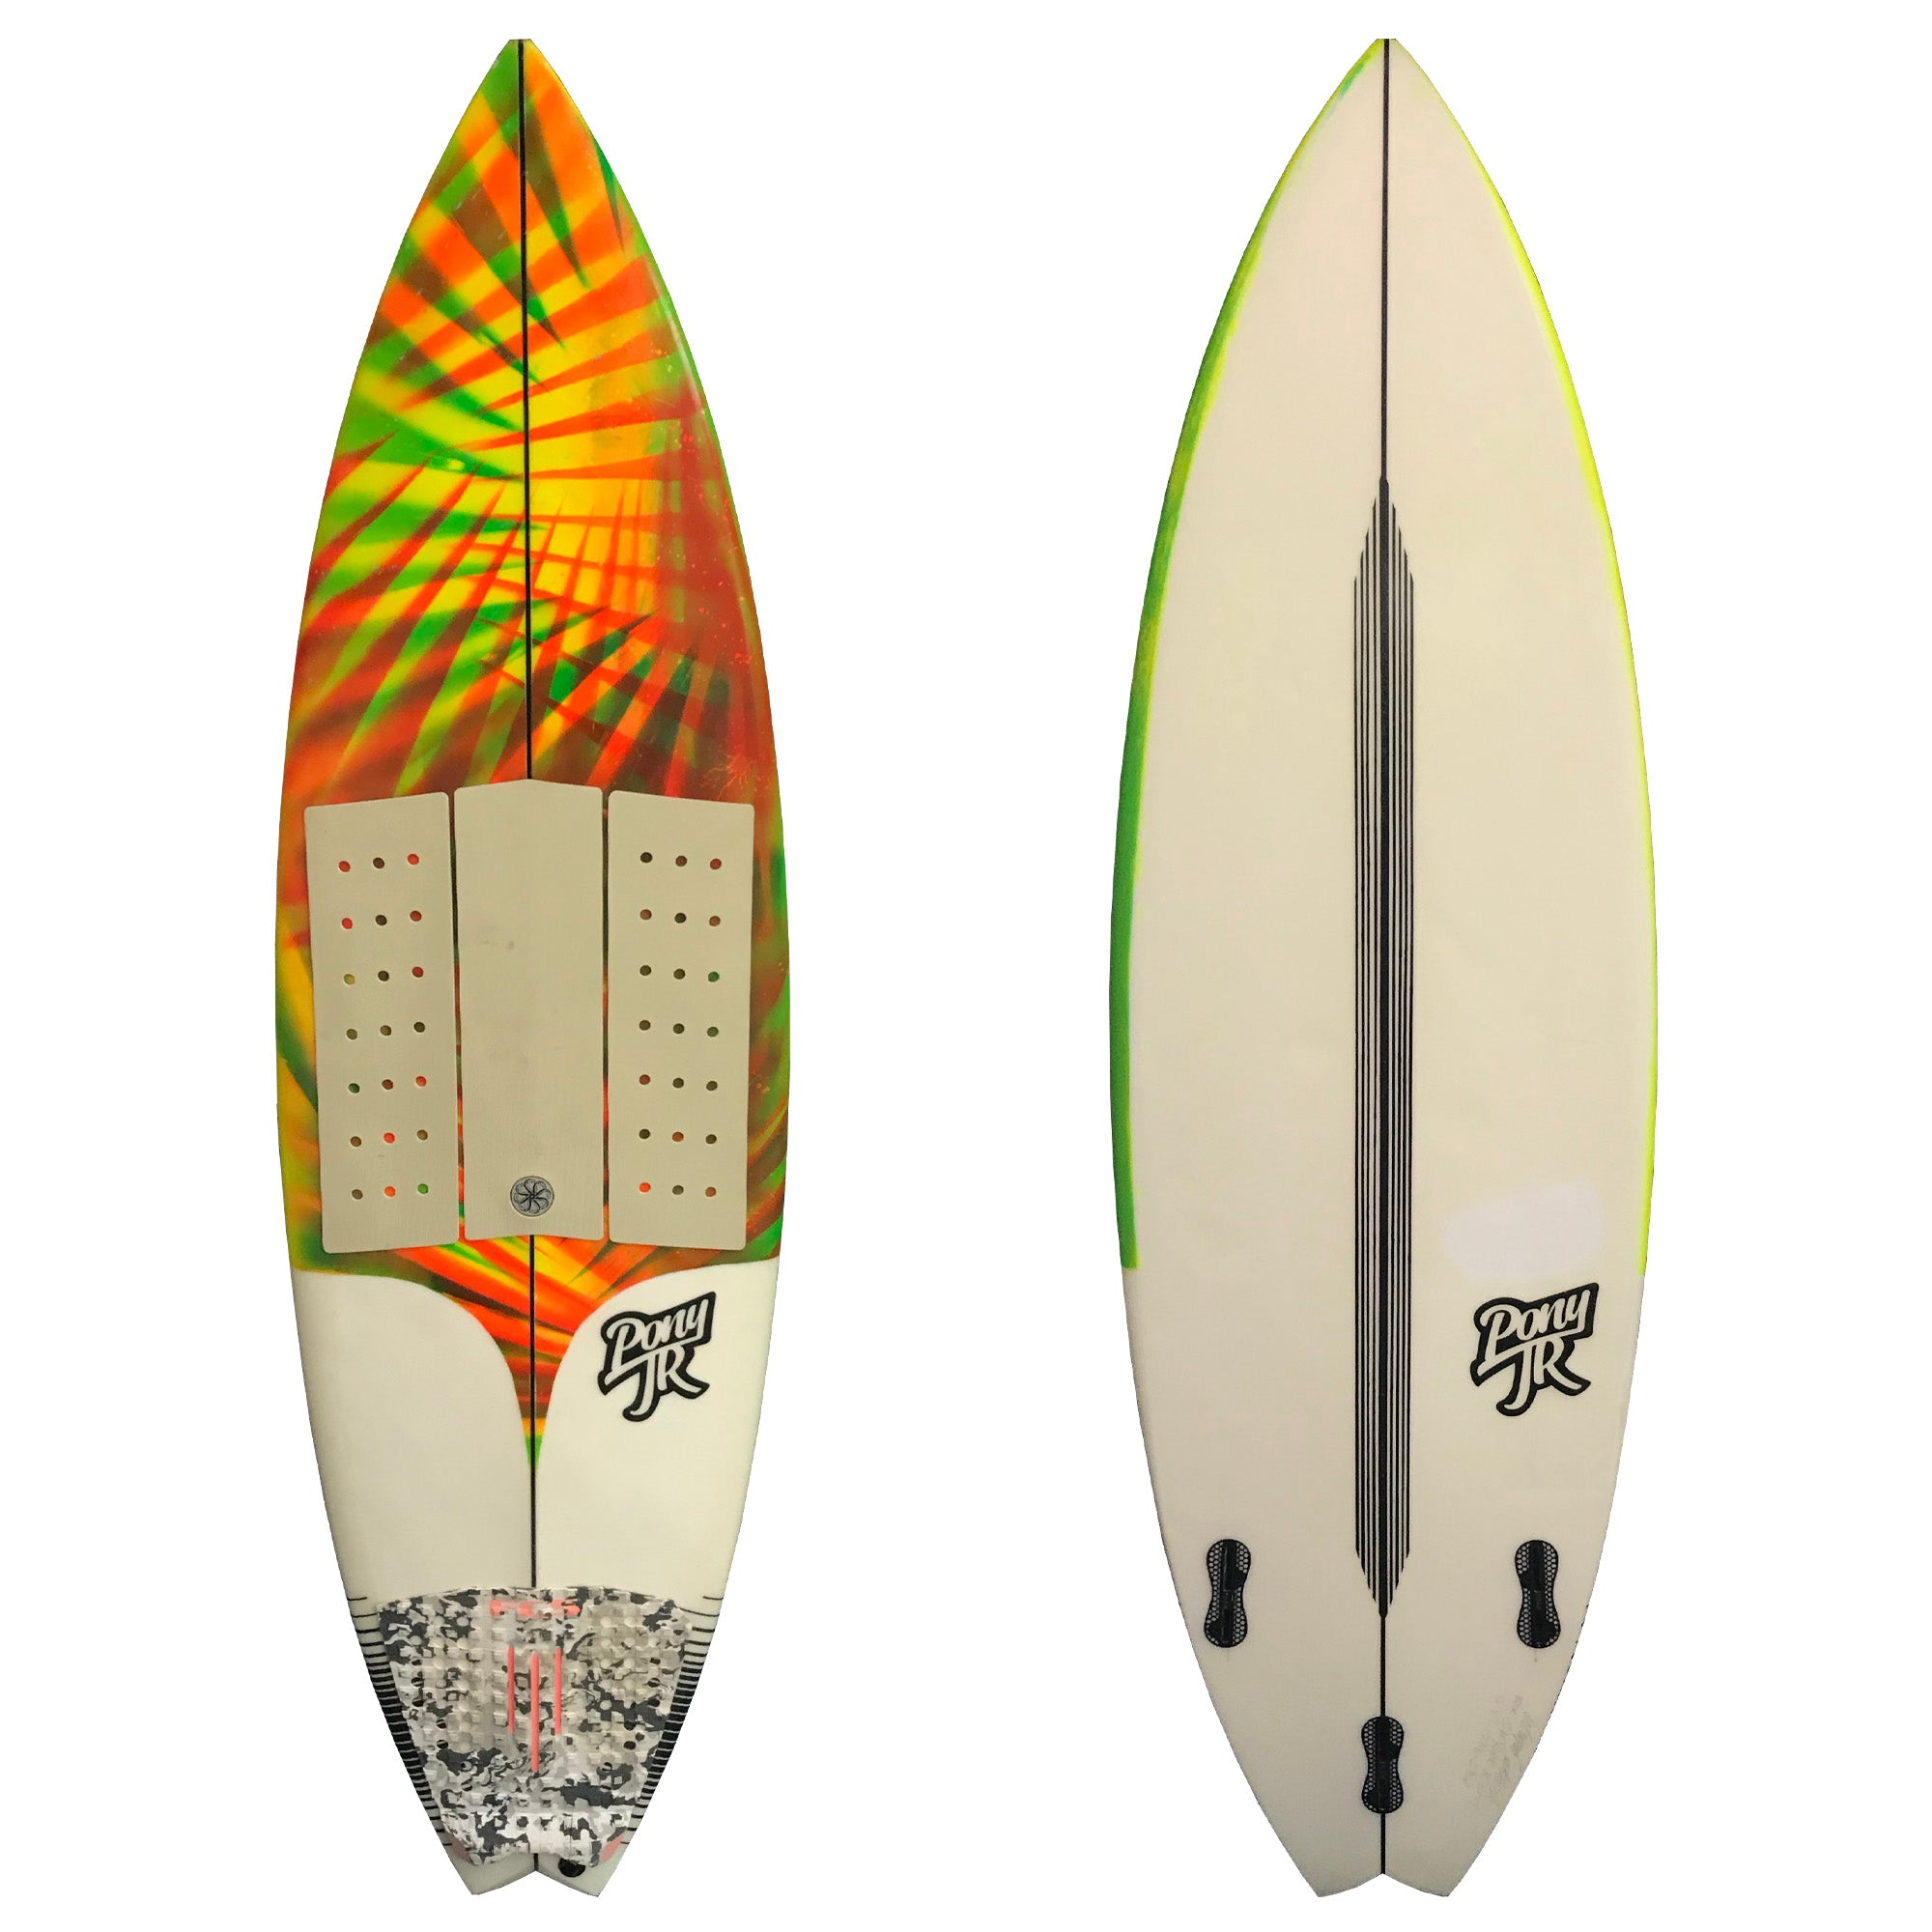 Pony Jr. 5'4 1/2 Used Surfboard